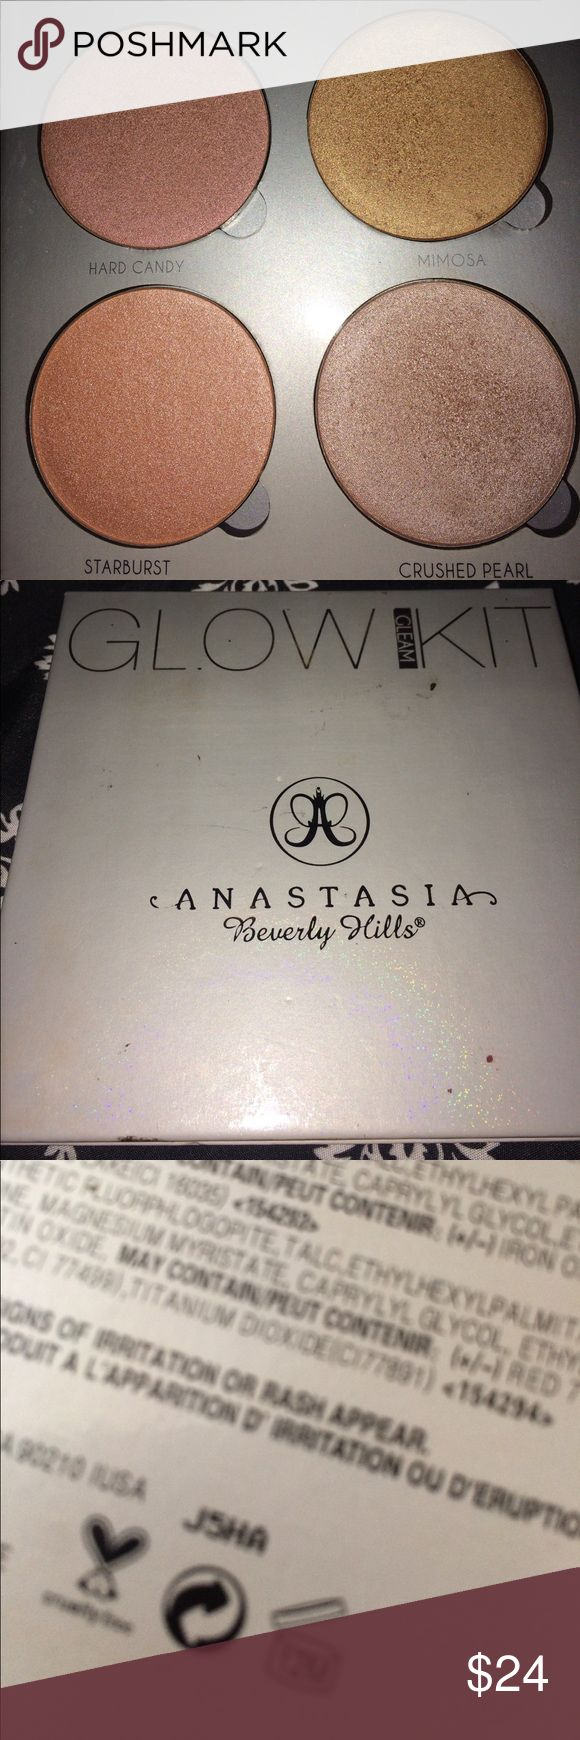 "Anastasia glow kit Going through all my makeup that I never use. Has been gently used as shown. Has about 85% of product left. Perfect for lighter complexions. I prefer the that glow for my warmer skin tones. Baby needs a new home 💁🏻❤️ ""GLEAM"" Anastasia Beverly Hills Makeup"